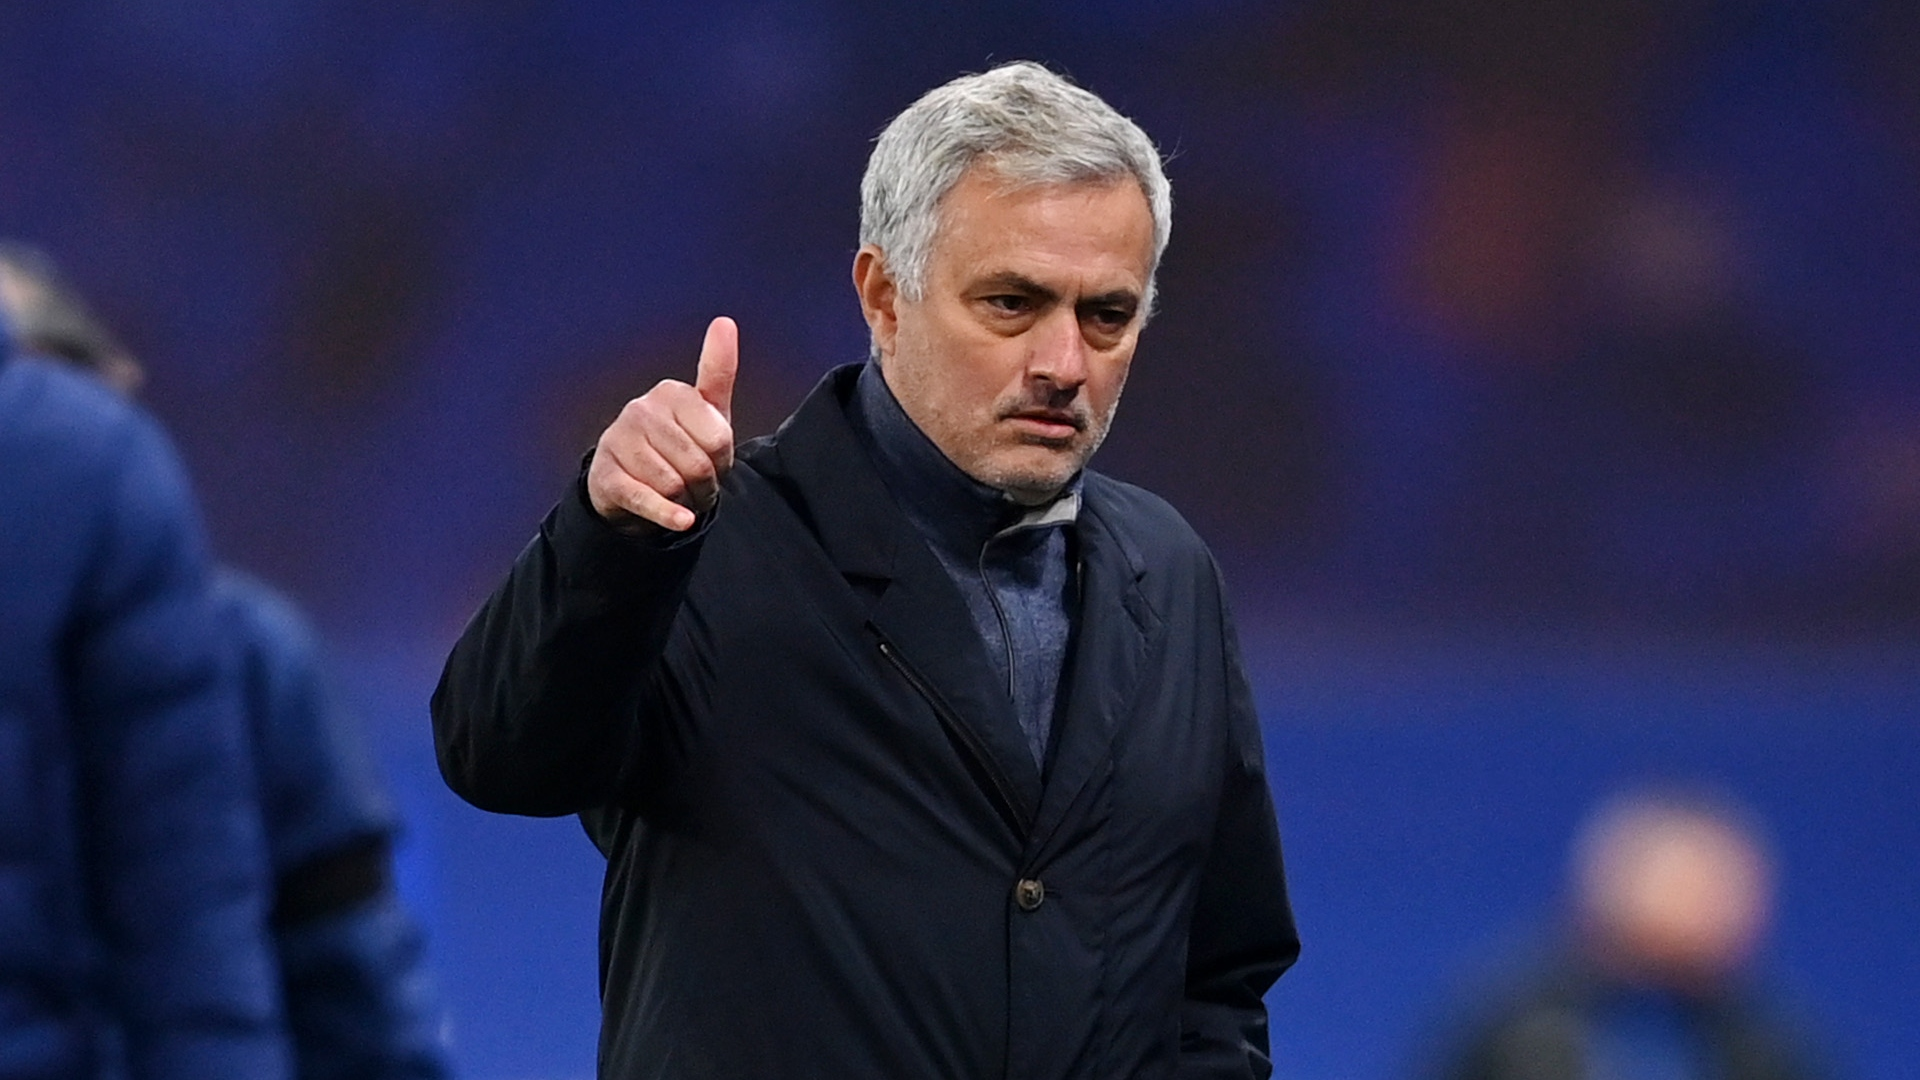 Mourinho sees Brentford semi-final as his biggest Tottenham game yet